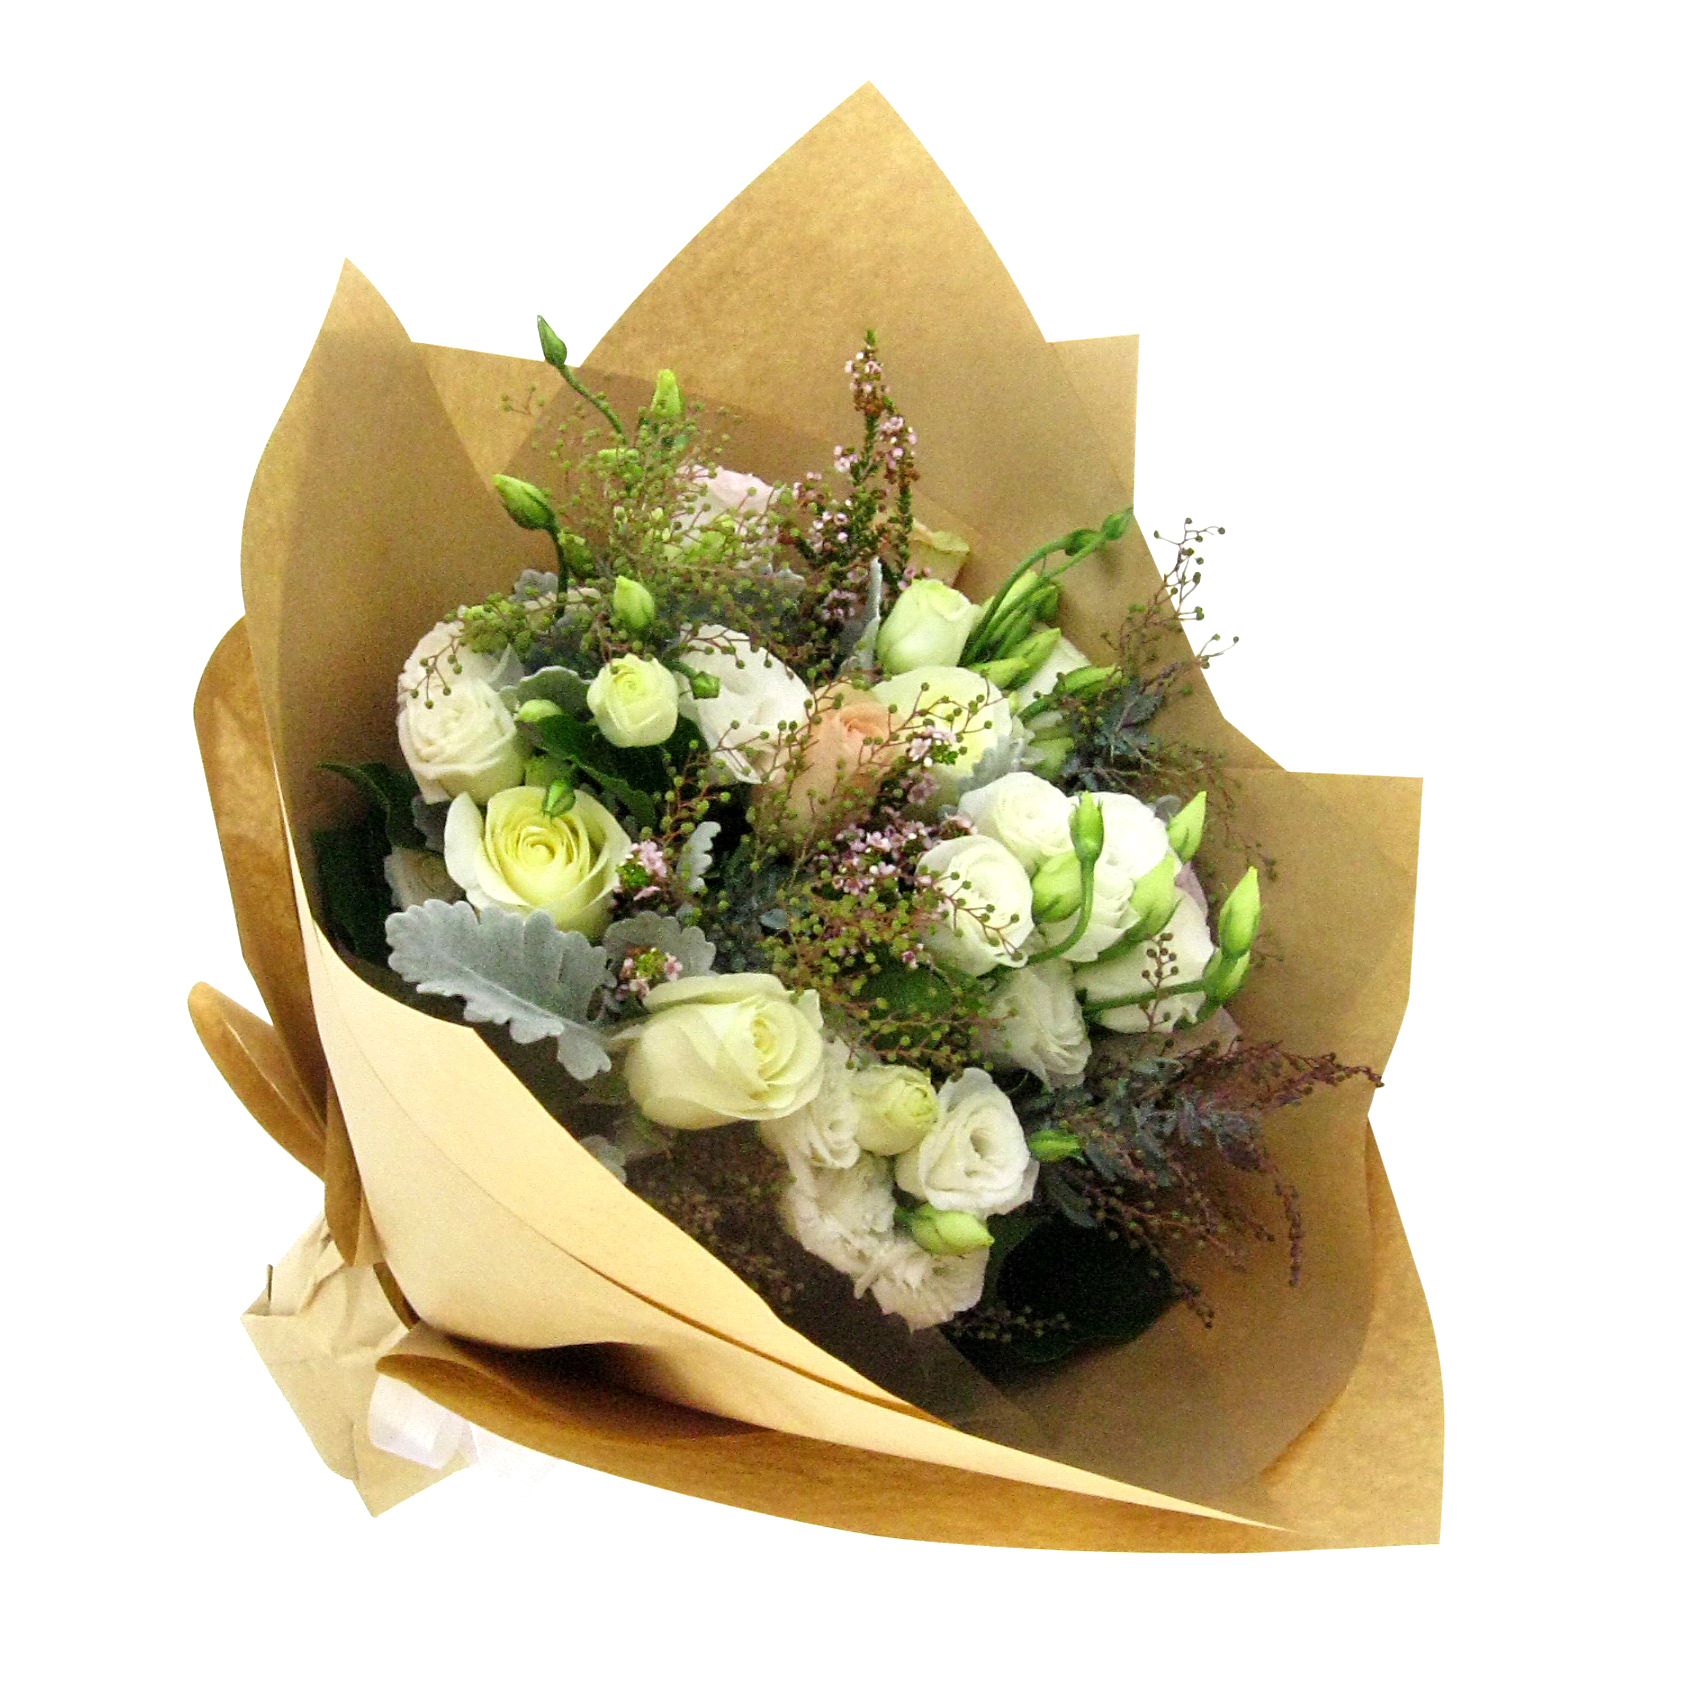 Flower delivery sydney sydney flowers from just 25 bouquets izmirmasajfo